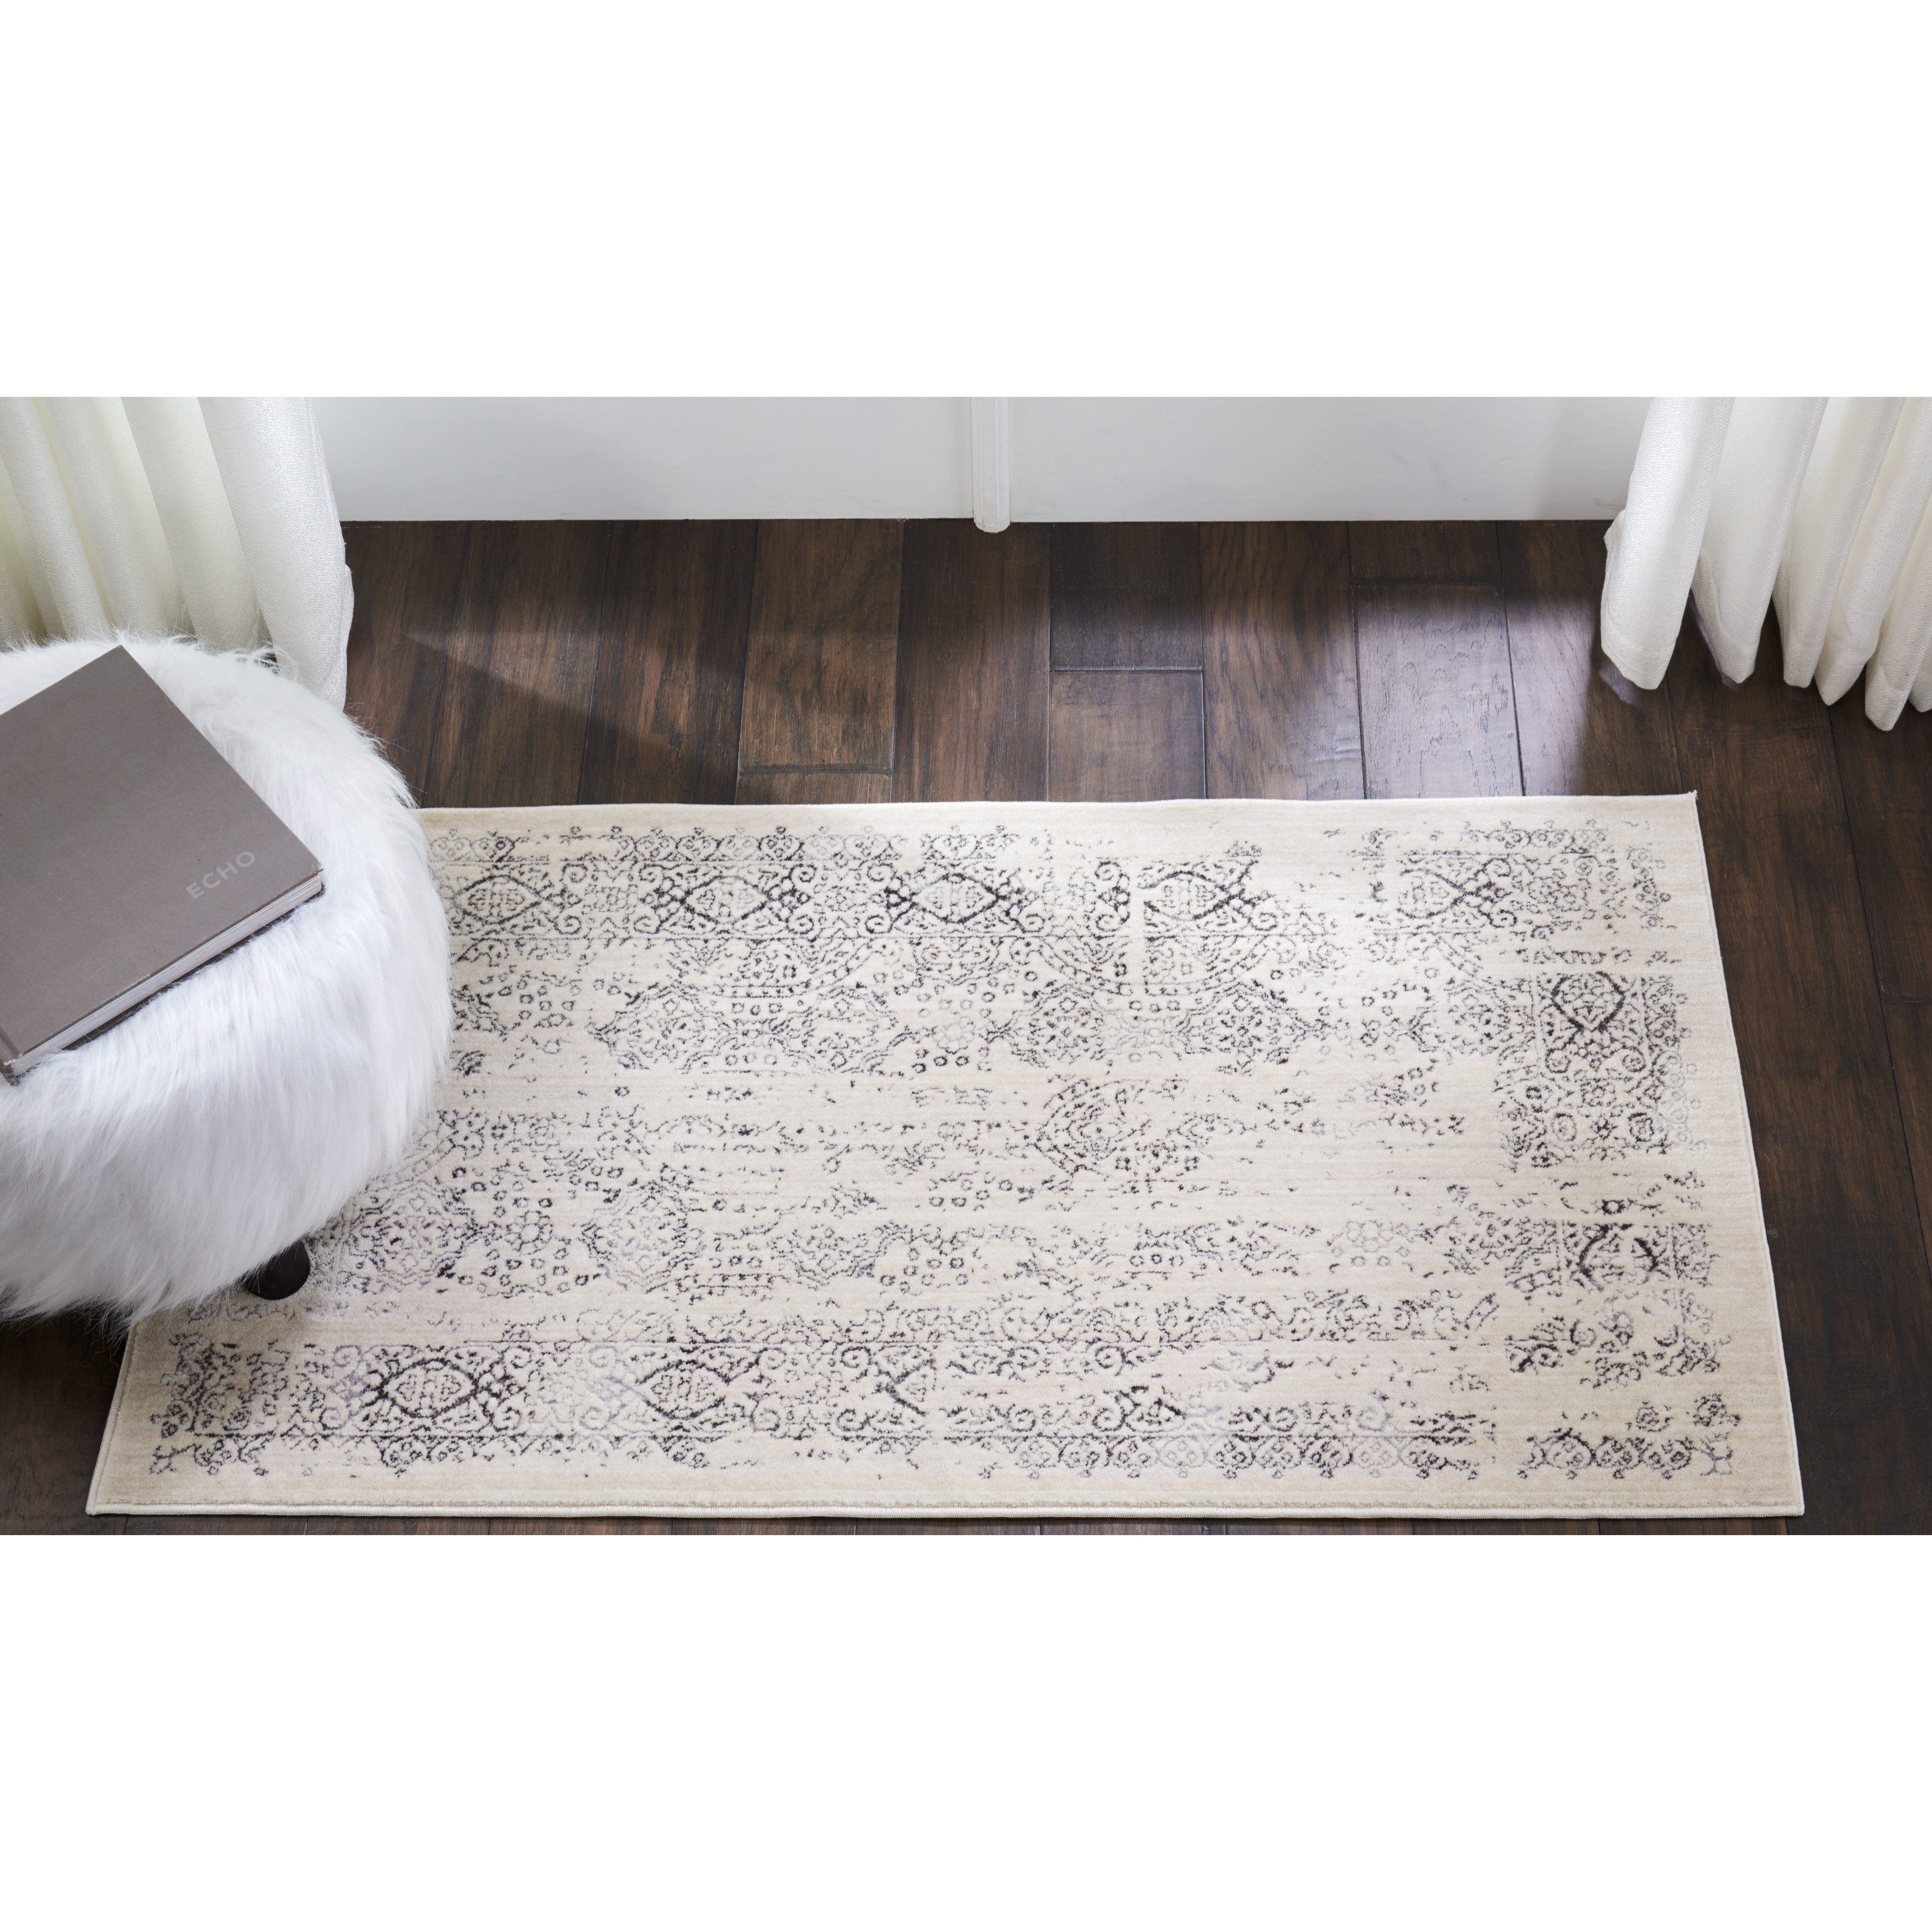 Shop Kathy Ireland Silver Screen Ivorygrey Area Rug By Nourison 2